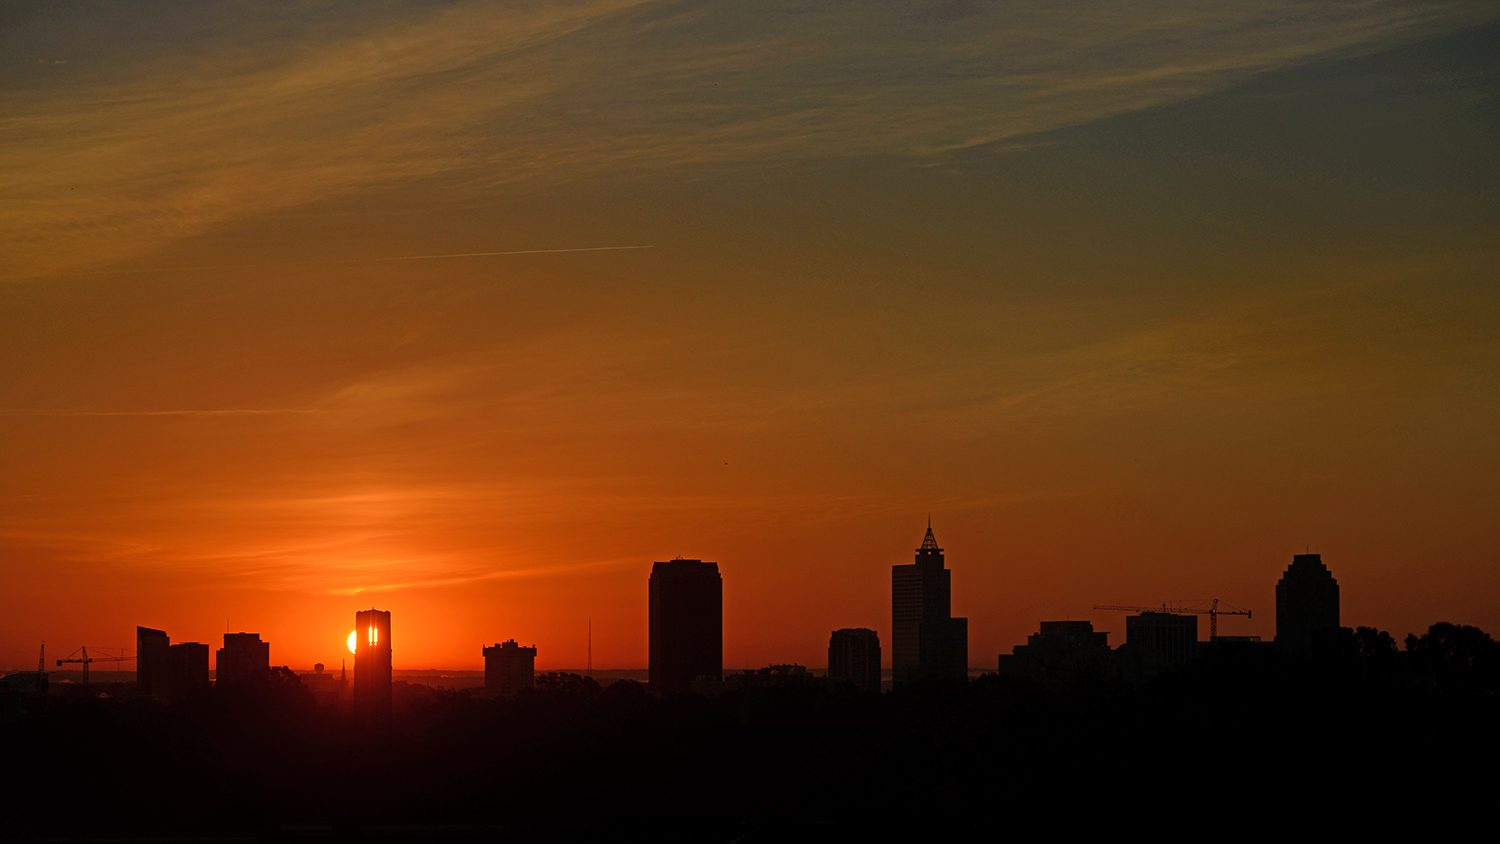 Sun rise silhouettes the Raleigh skyline